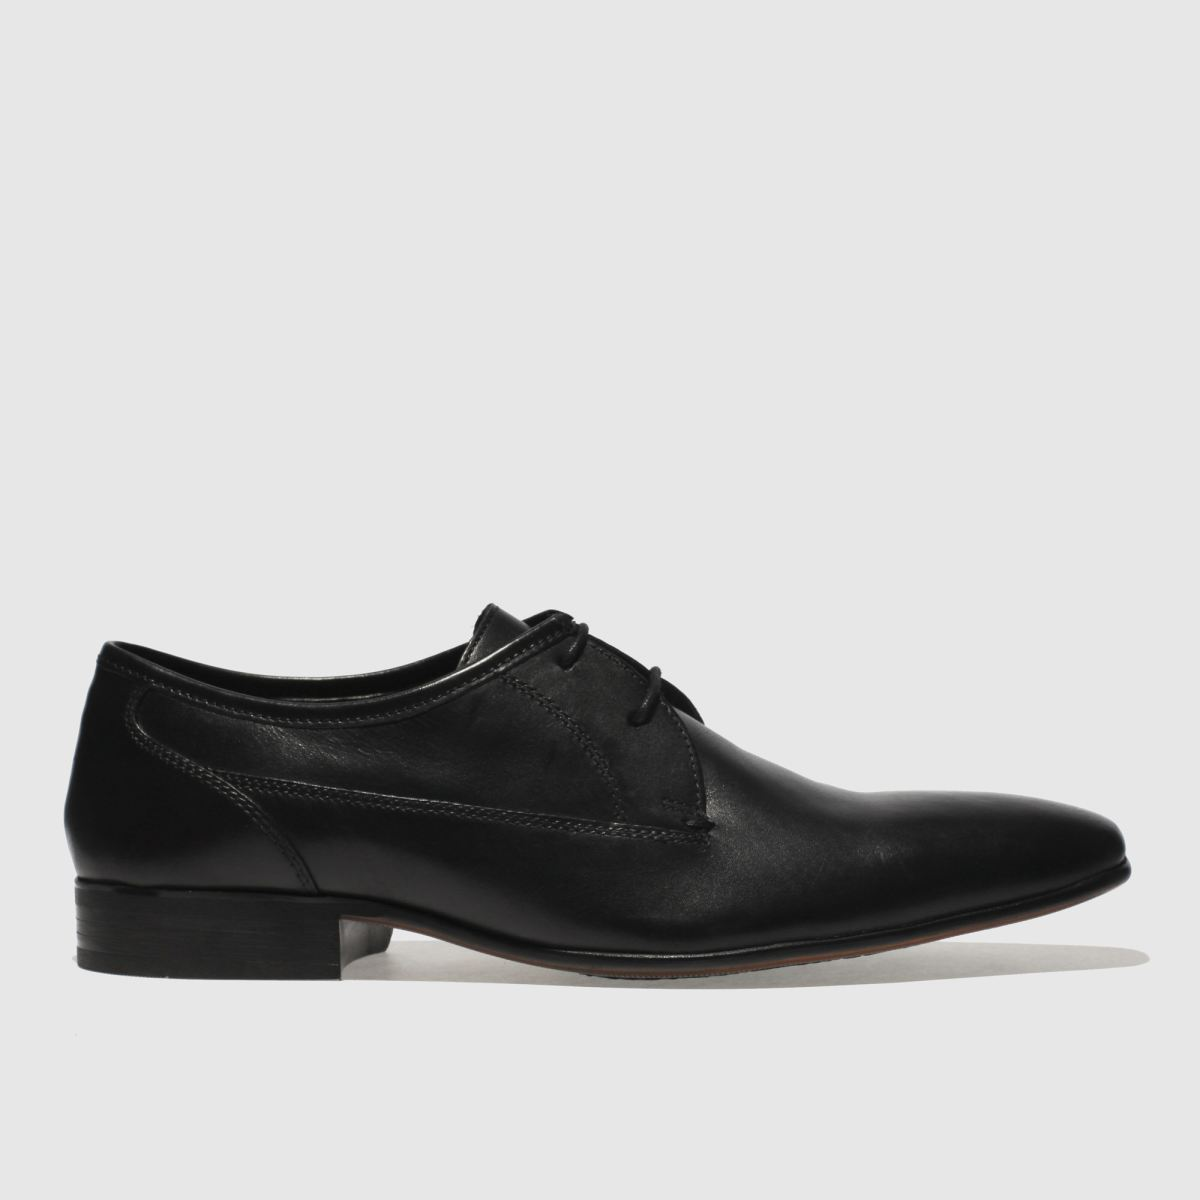 Ikon Black Bowles Gibson Shoes